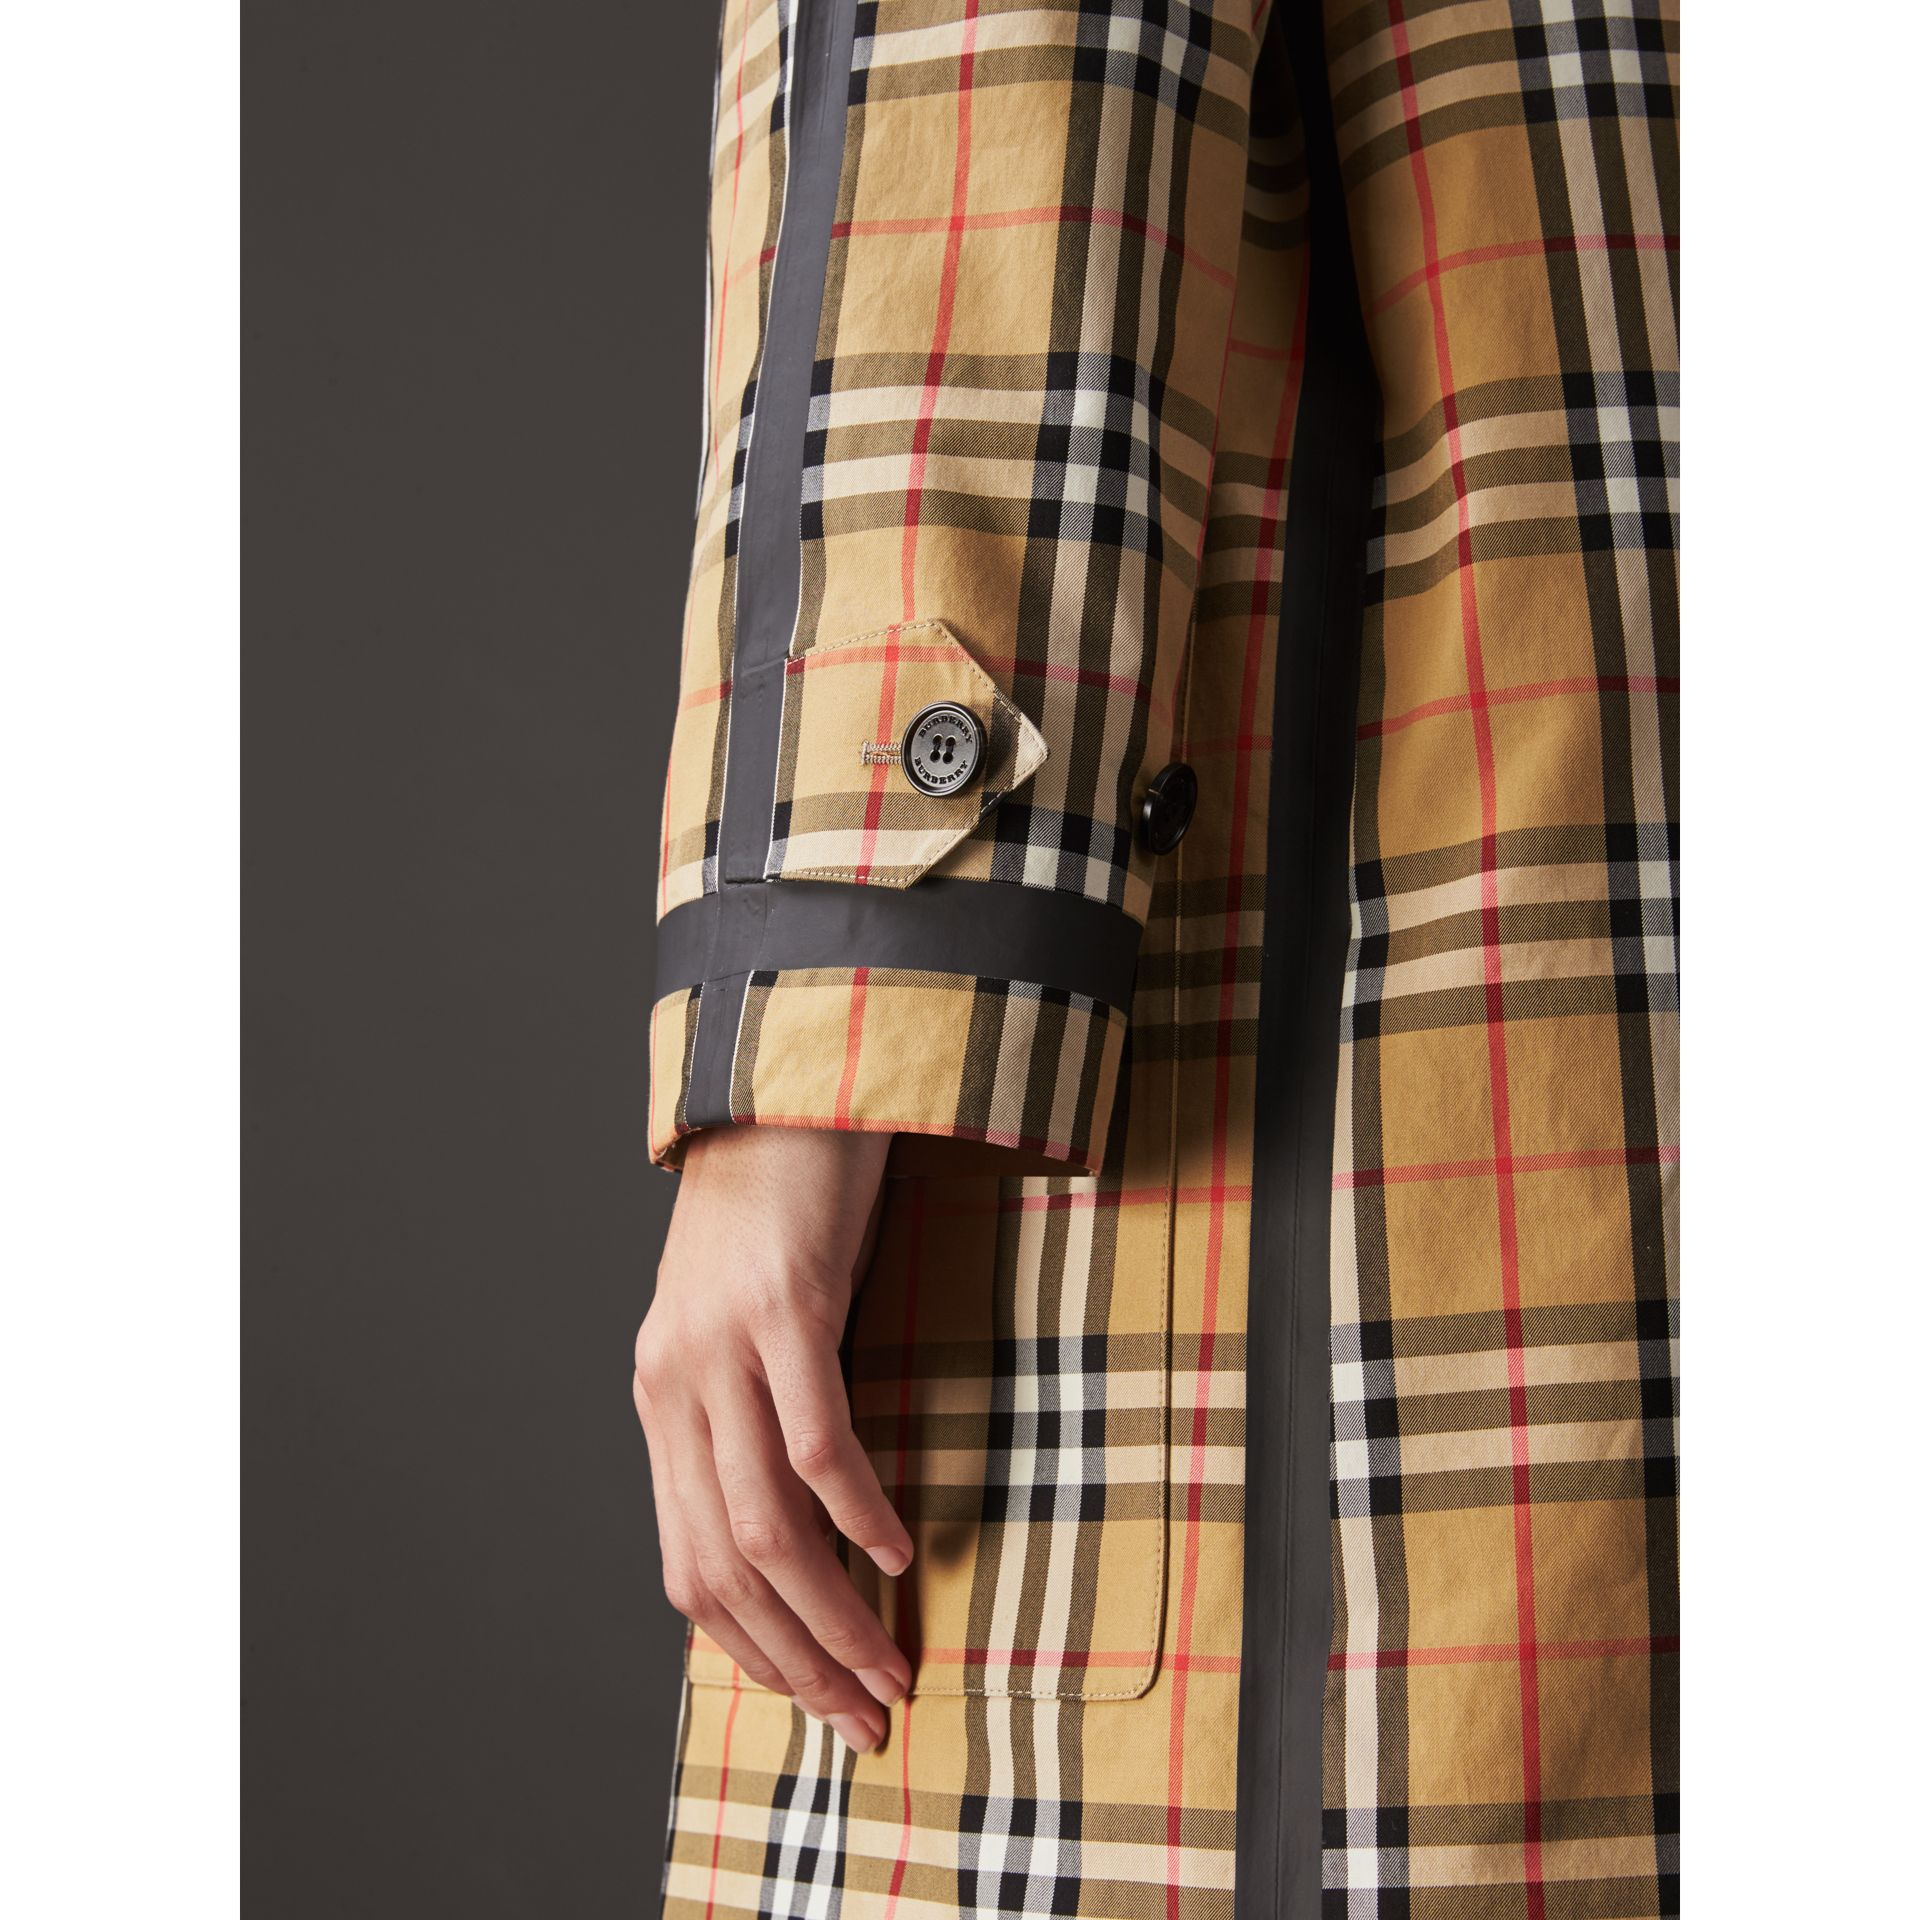 Paletot réversible en gabardine à motif Vintage check (Jaune Antique) - Femme | Burberry - photo de la galerie 5